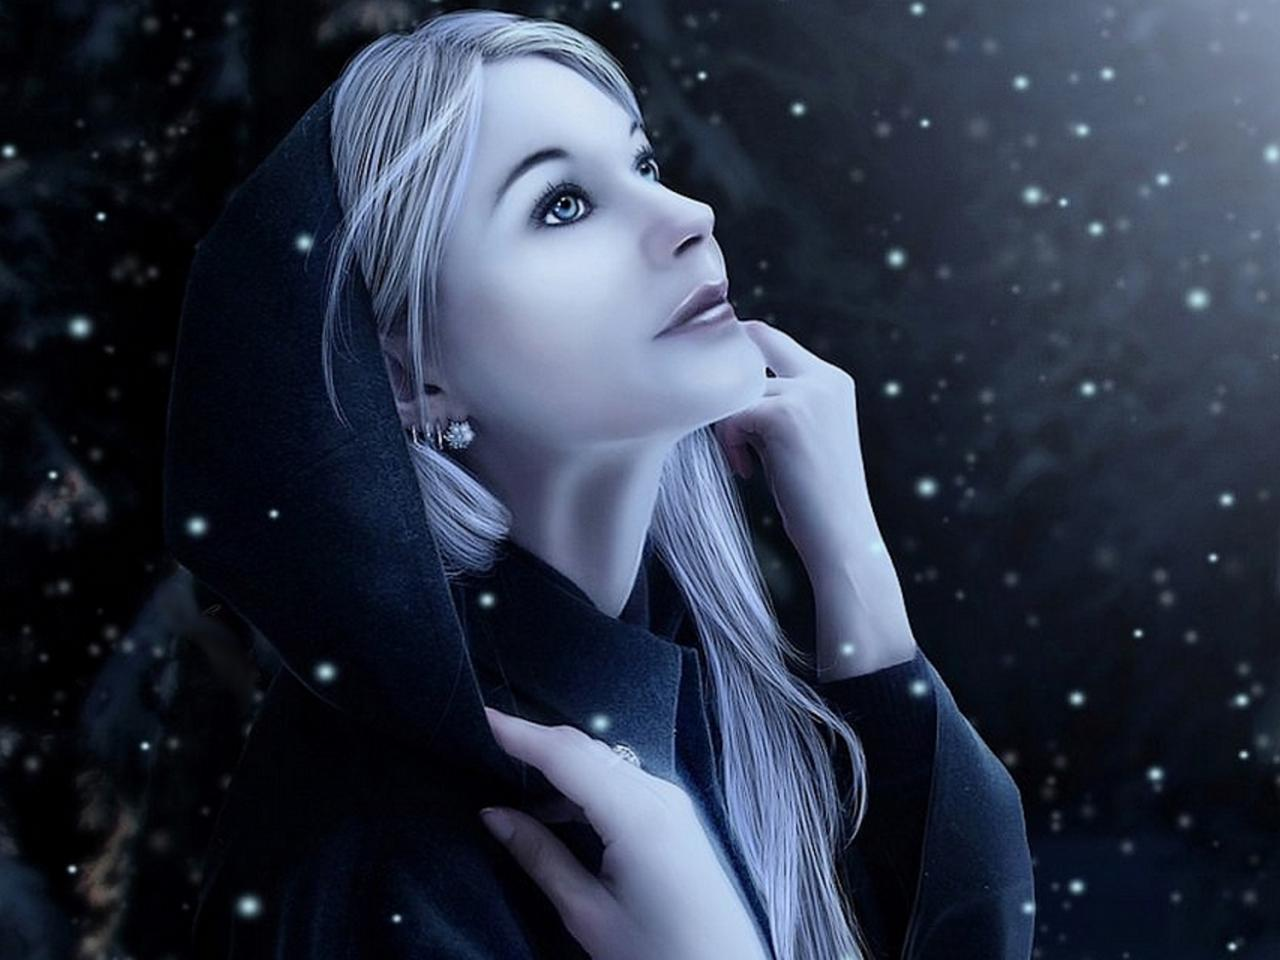 Fantasy Female Wallpapers 1280x960